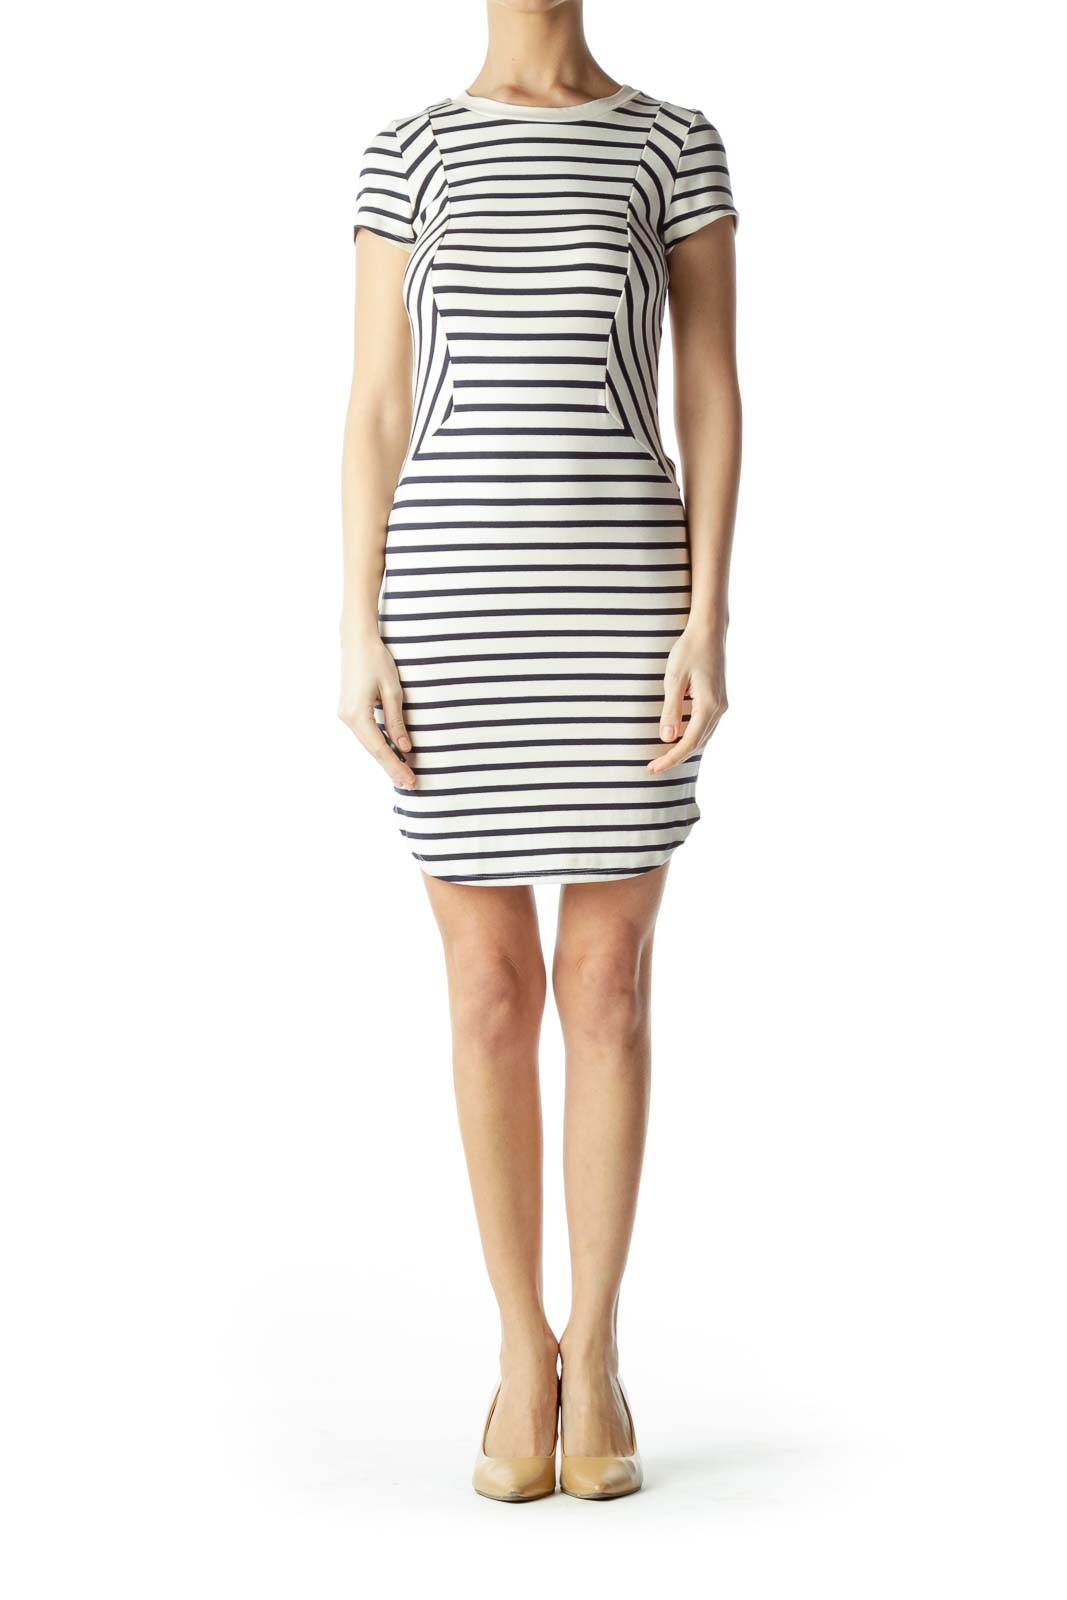 Cream with Navy Blue Stripes Jersey Dress